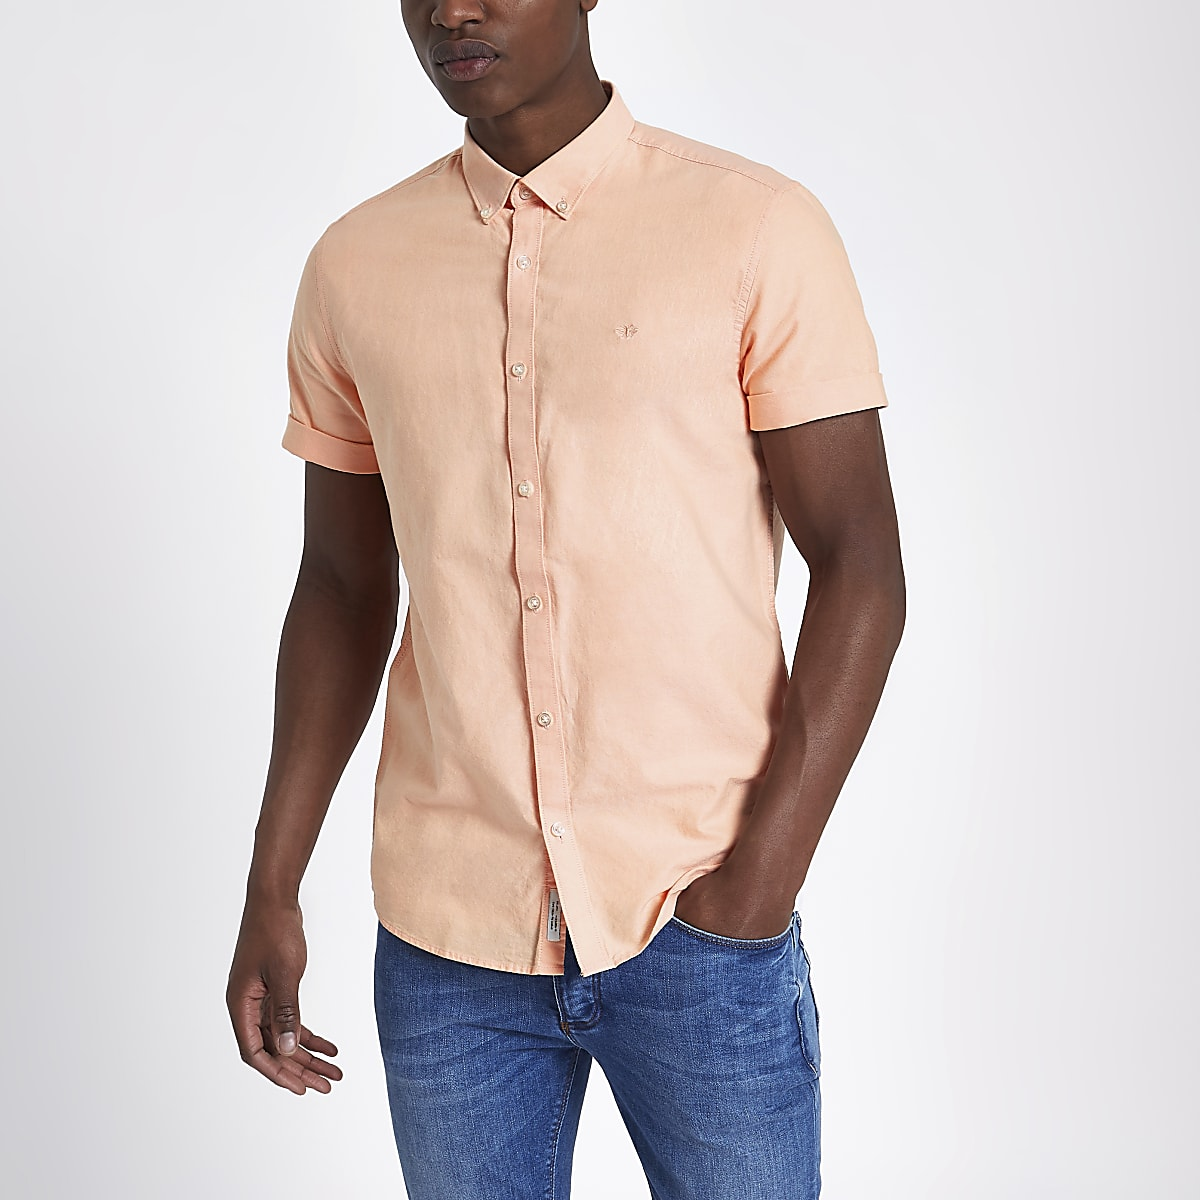 Peach orange short sleeve Oxford shirt